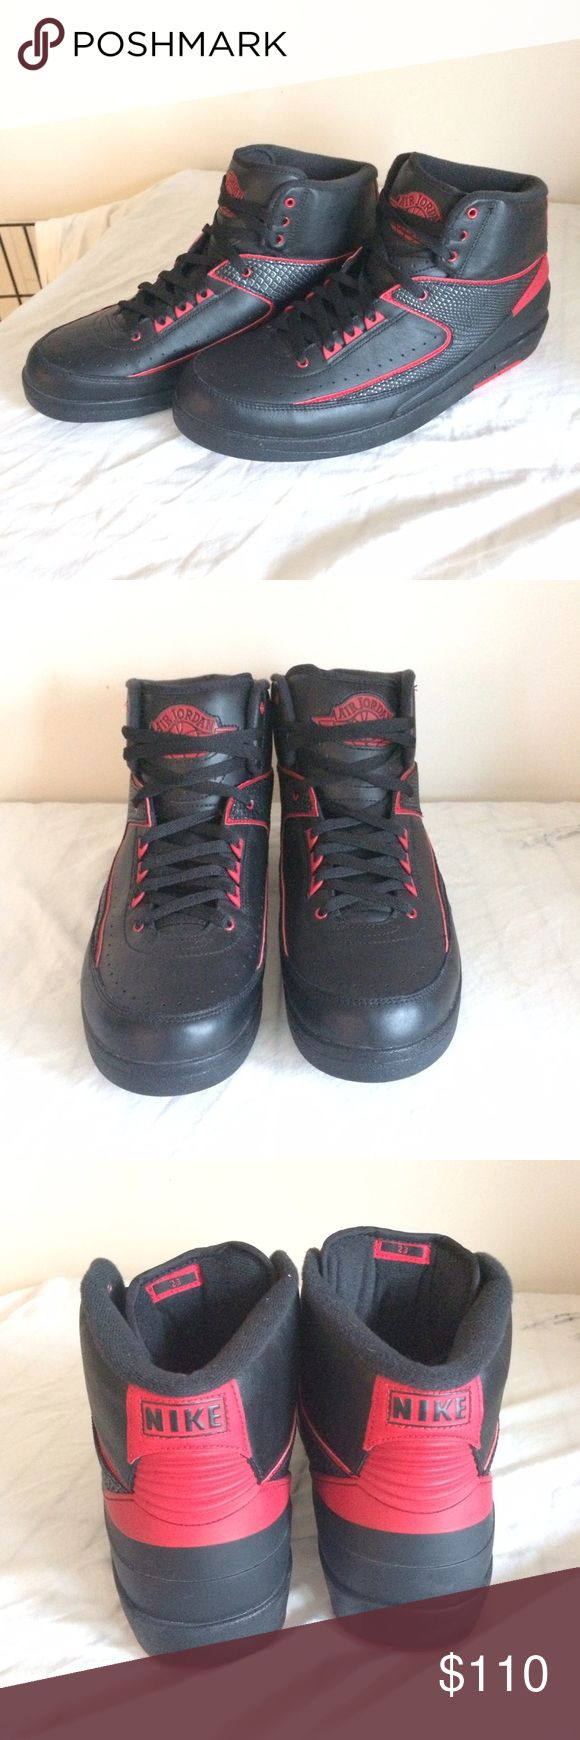 "Air Jordan 2 Retro ""Alternate 87"" Exclusive Jordan Retro 2's in black and varsity red. Men's size 13, hard to find. Brand new without box, never worn, perfect condition. Jordan Shoes Sneakers"